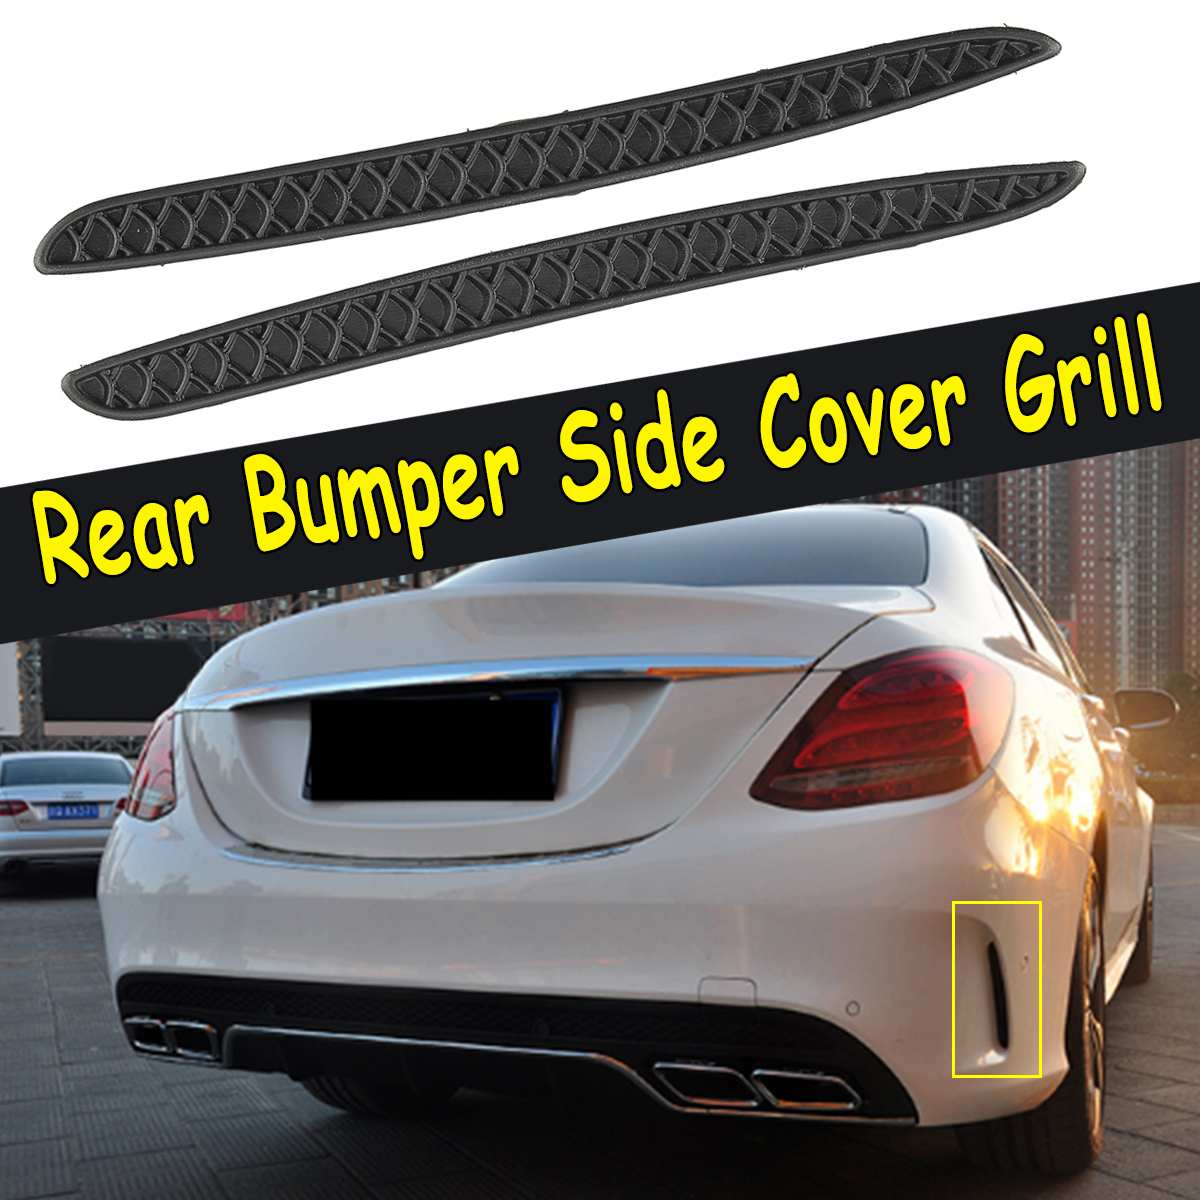 2Pcs Rear Bumper Side Cover Grill Fit For Mercedes-Benz MB C63 W205 2013 2014 2015 2016 2017 For AMG image